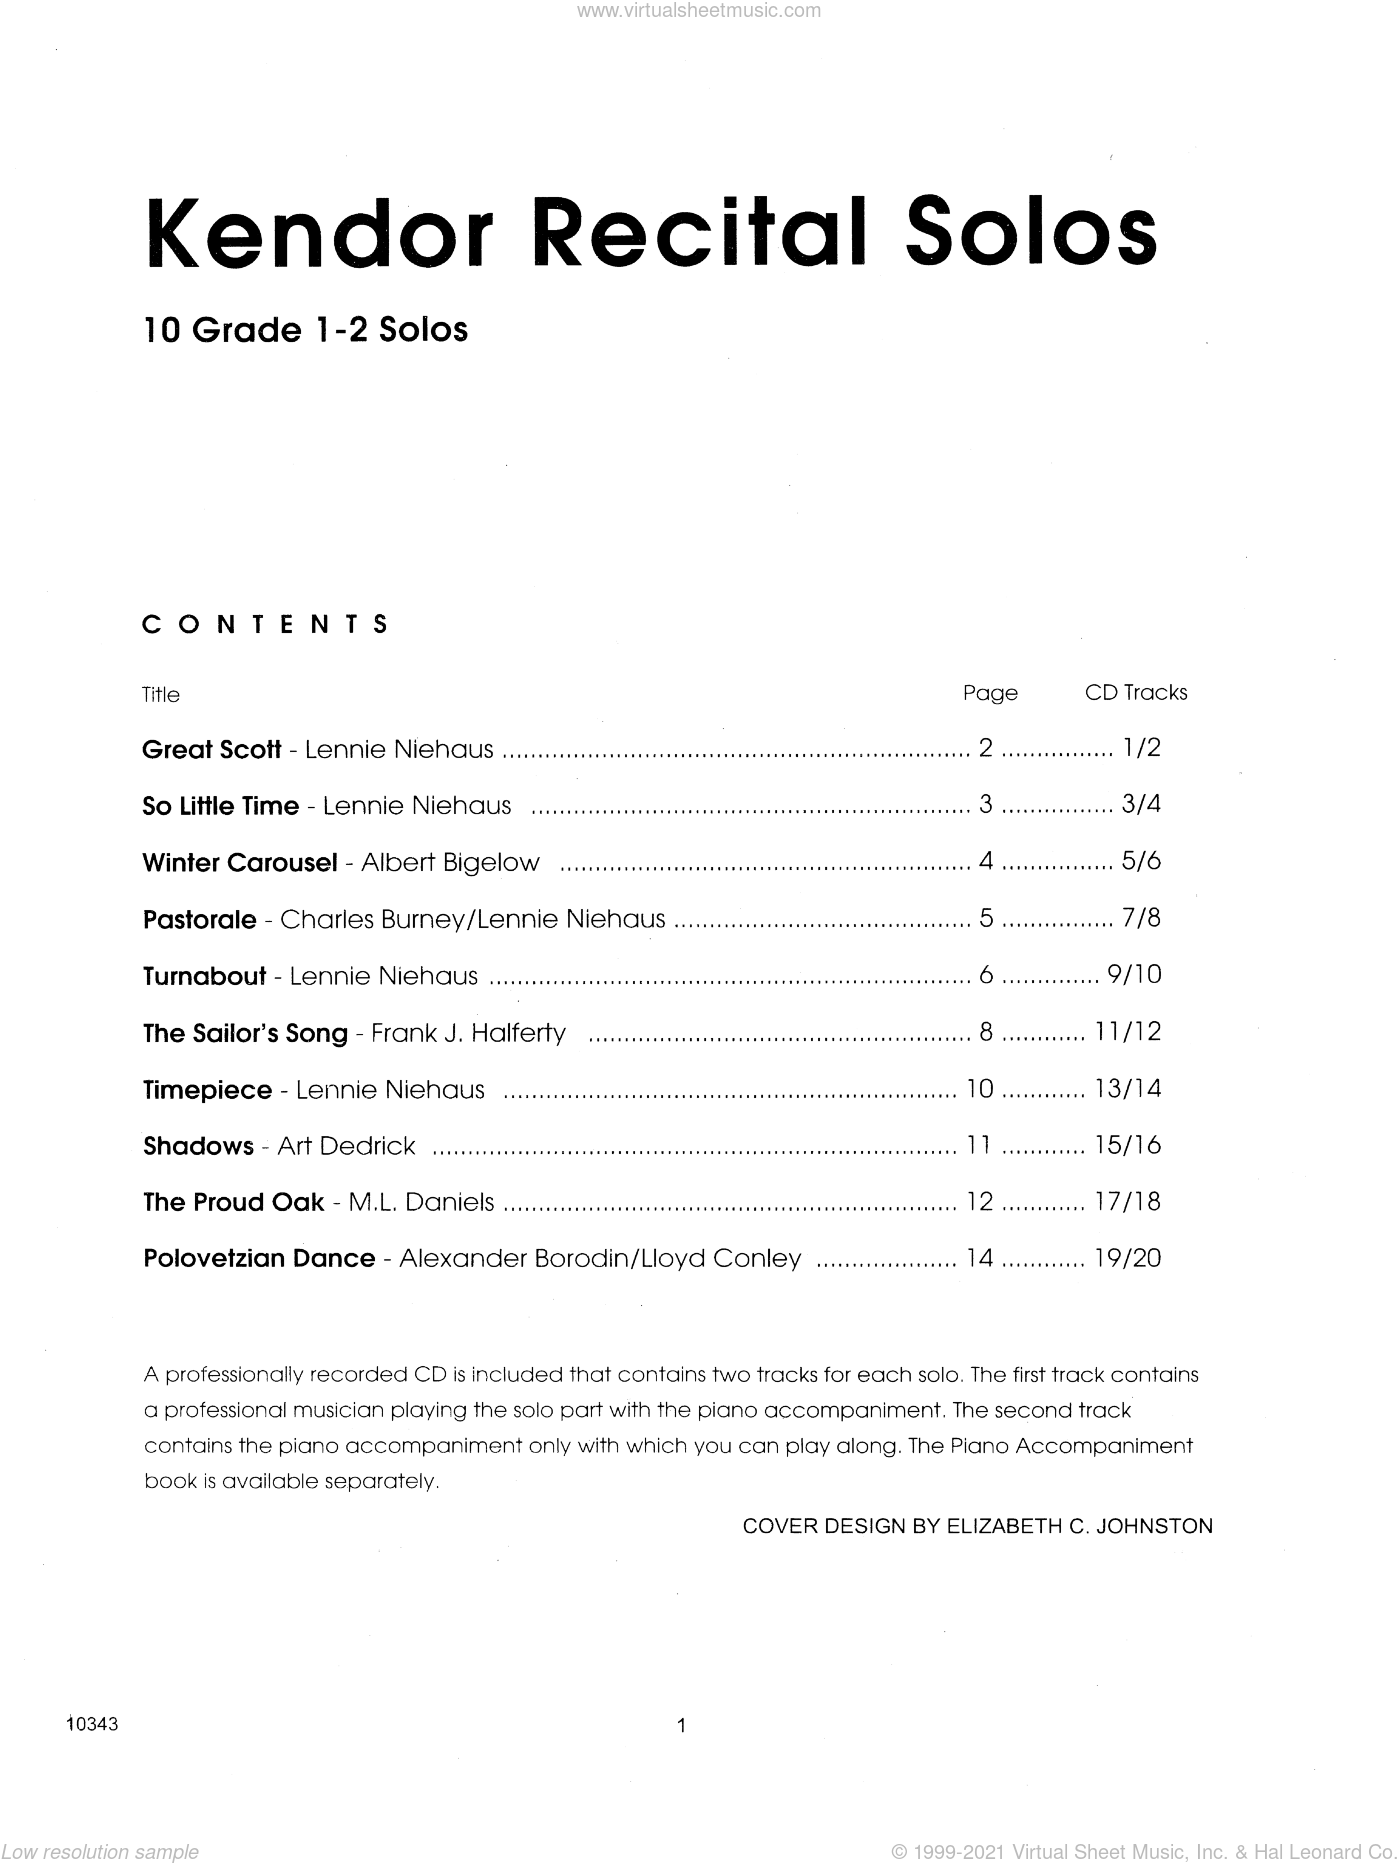 Kendor Recital Solos - Trombone - Solo Book sheet music for trombone solo. Score Image Preview.